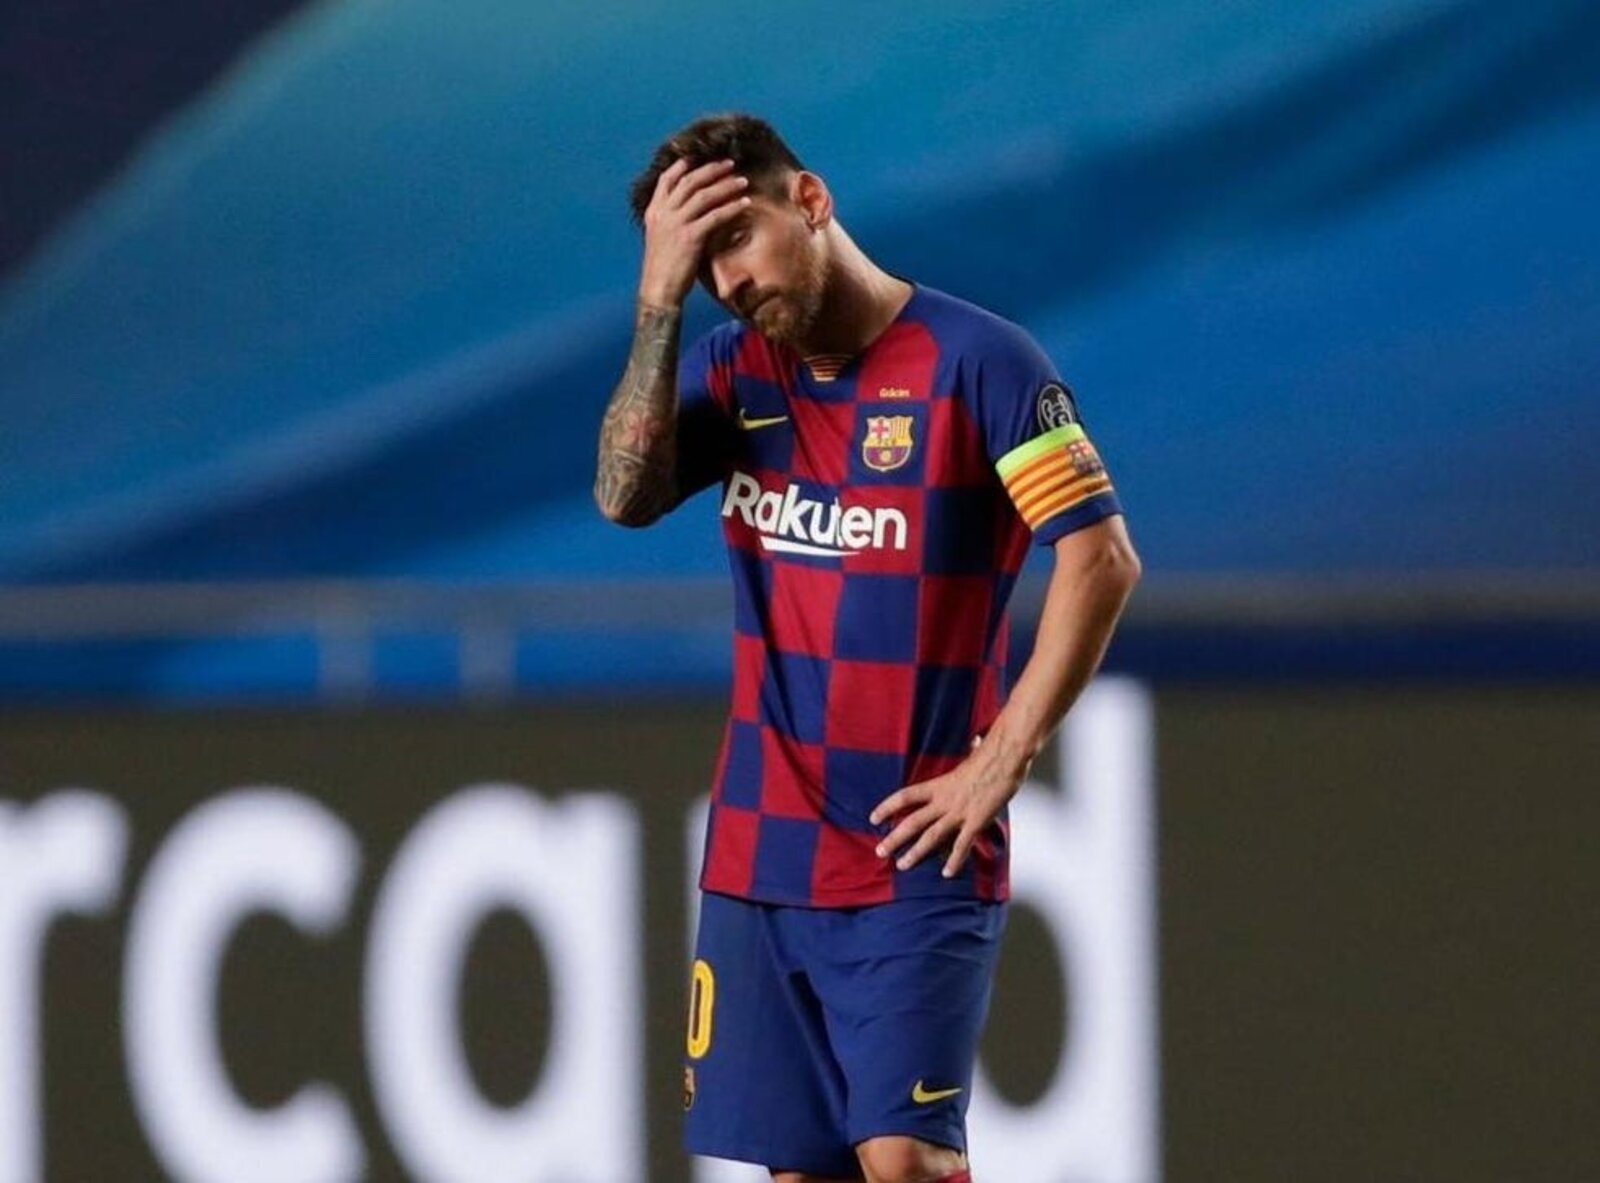 The rumors are continuing to swirl that football legend Lionel Messi is leaving FC Barcelona this year, and if he does, this is bad news for Barcelona.